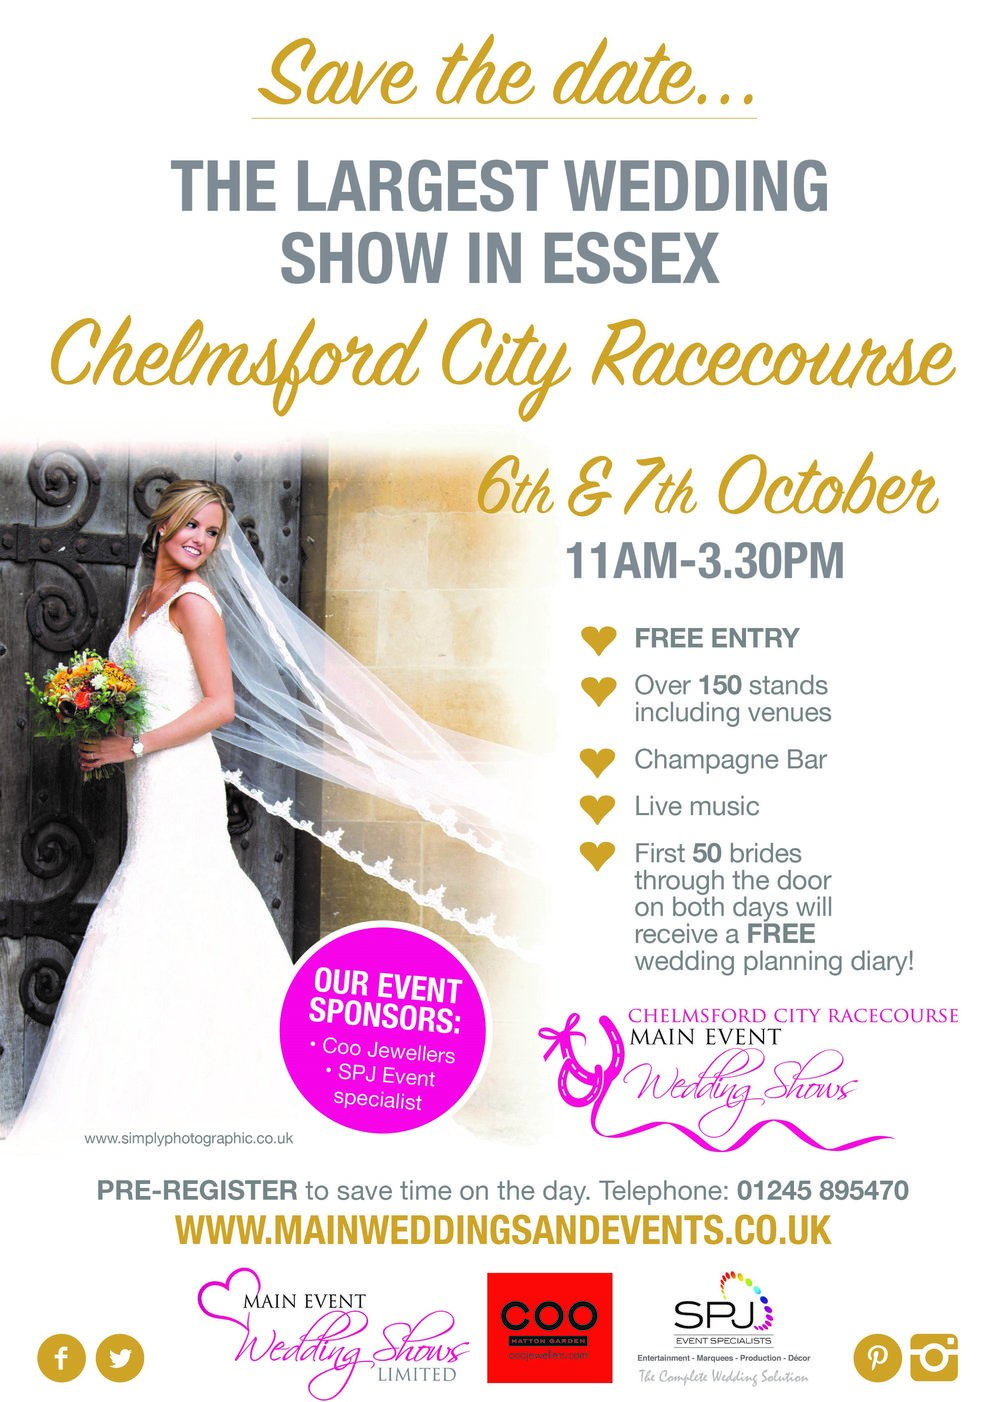 The largest Wedding Show in Essex run by Main Event Wedding Shows, the wedding show takes place at the Chelmsford City Race Course on Saturday 6th and Sunday 7th October 2018 between 11AM and 3:30PM (both days).